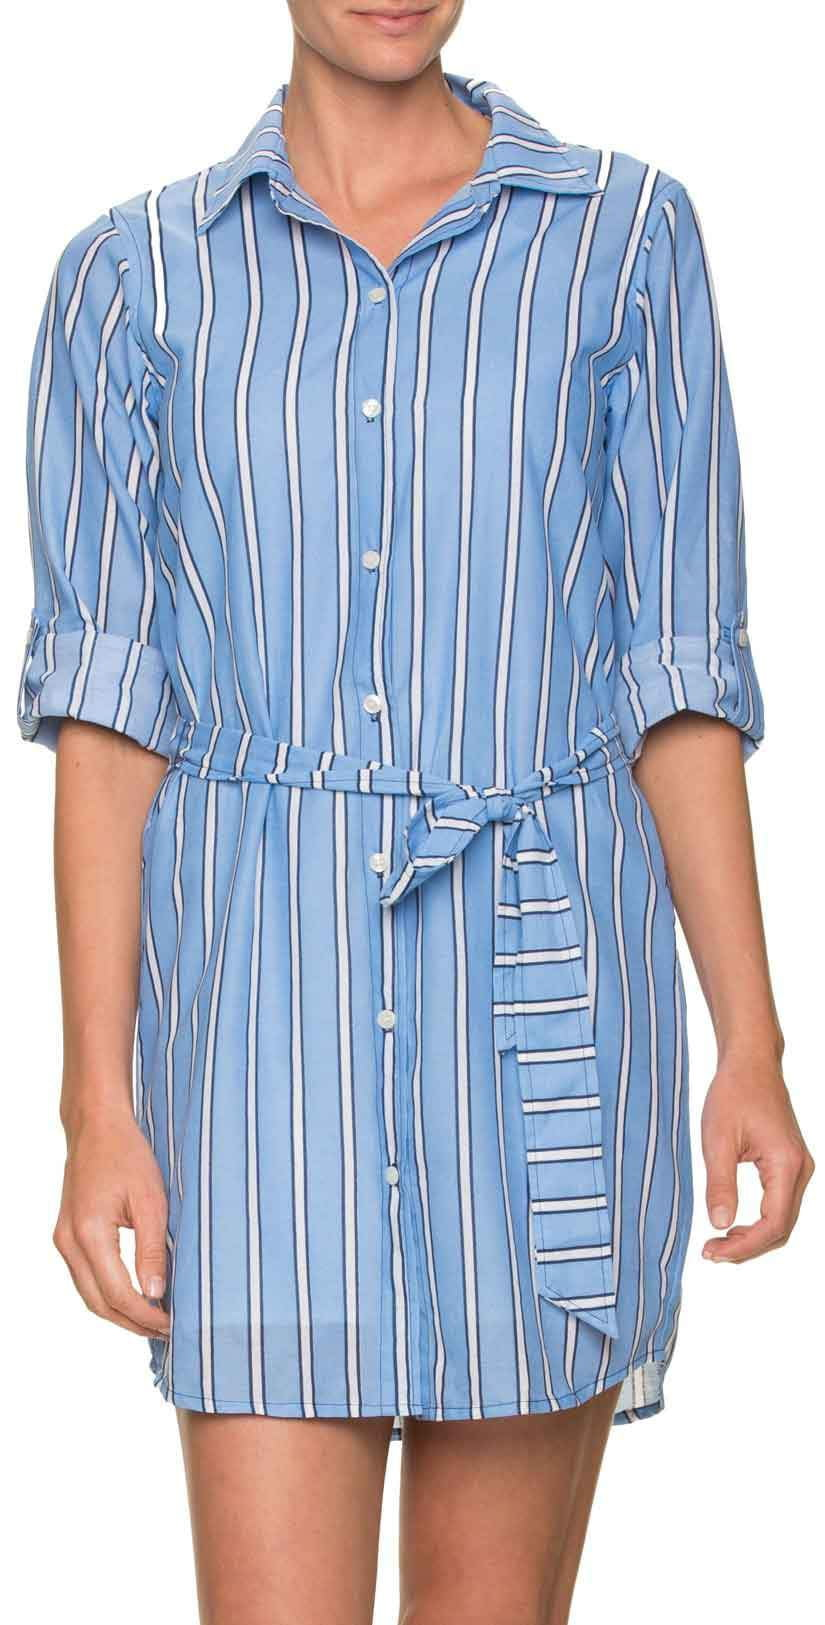 Draper James for Helen Jon Shirt Dress in Bold Stripe: